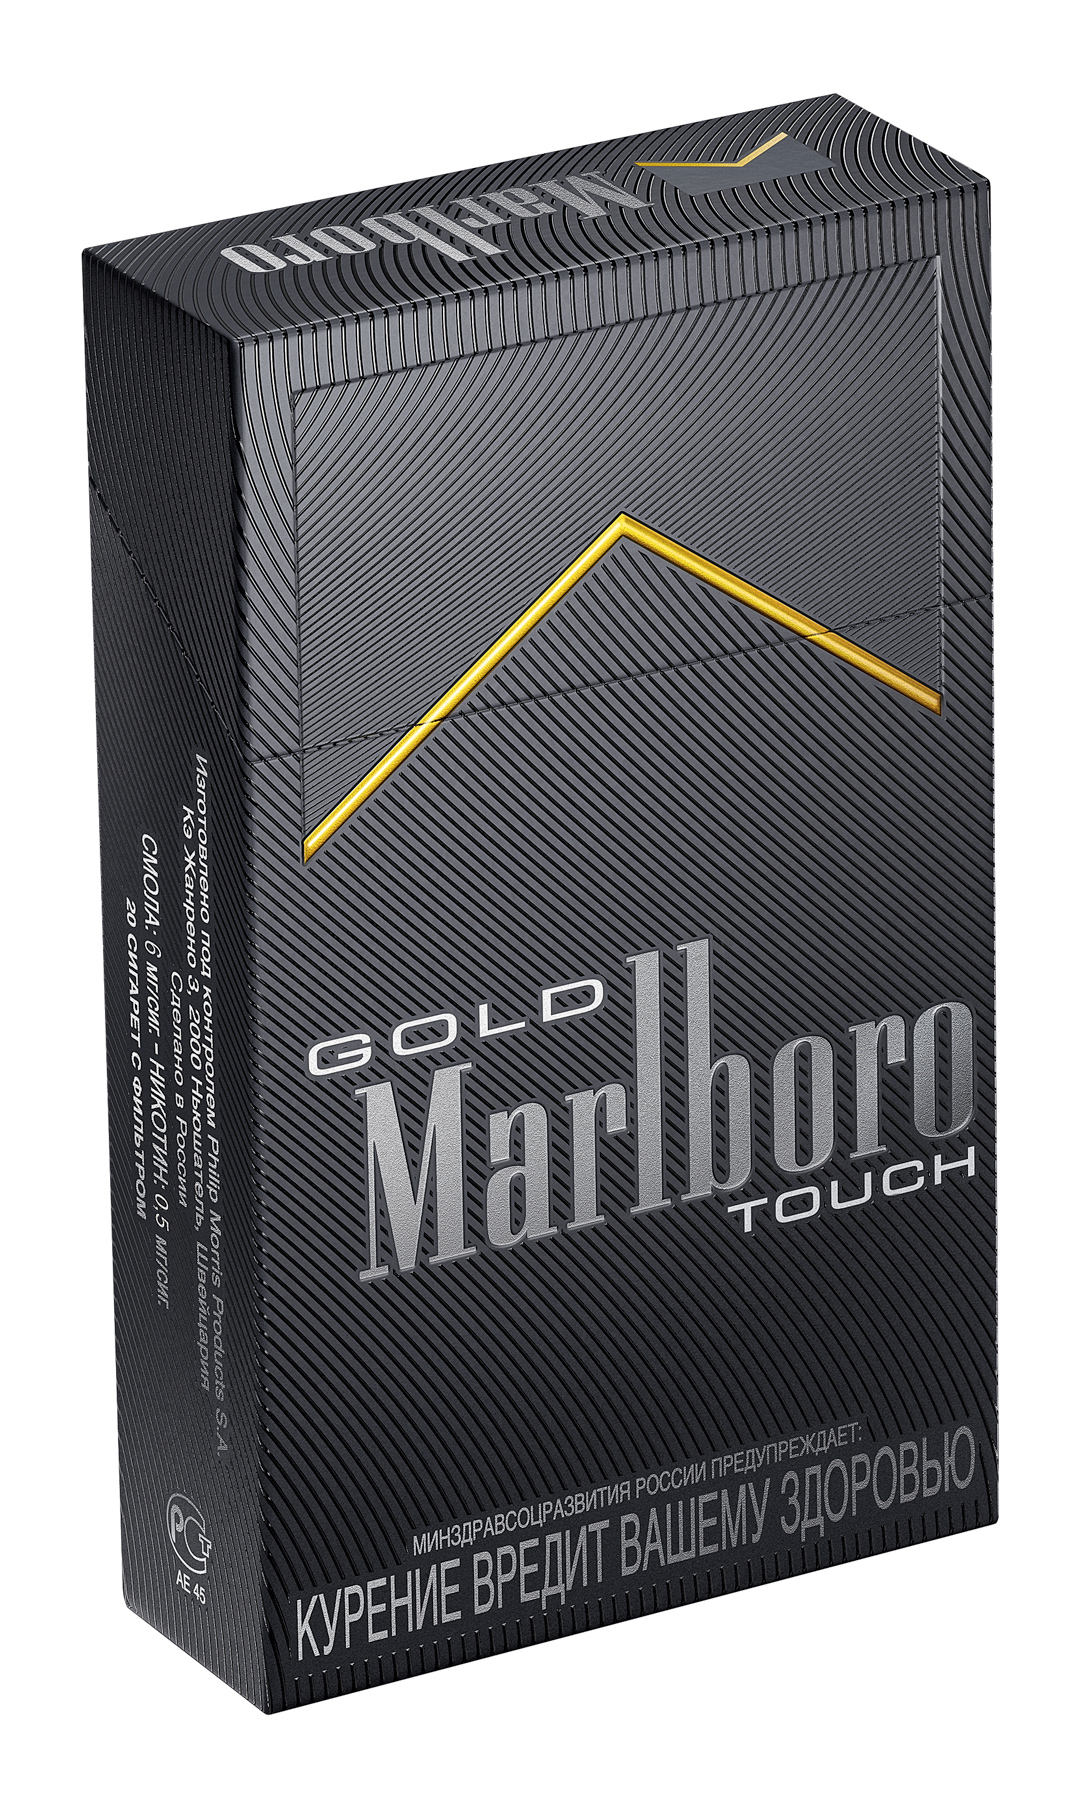 Цигарки Malboro Gold Touch.